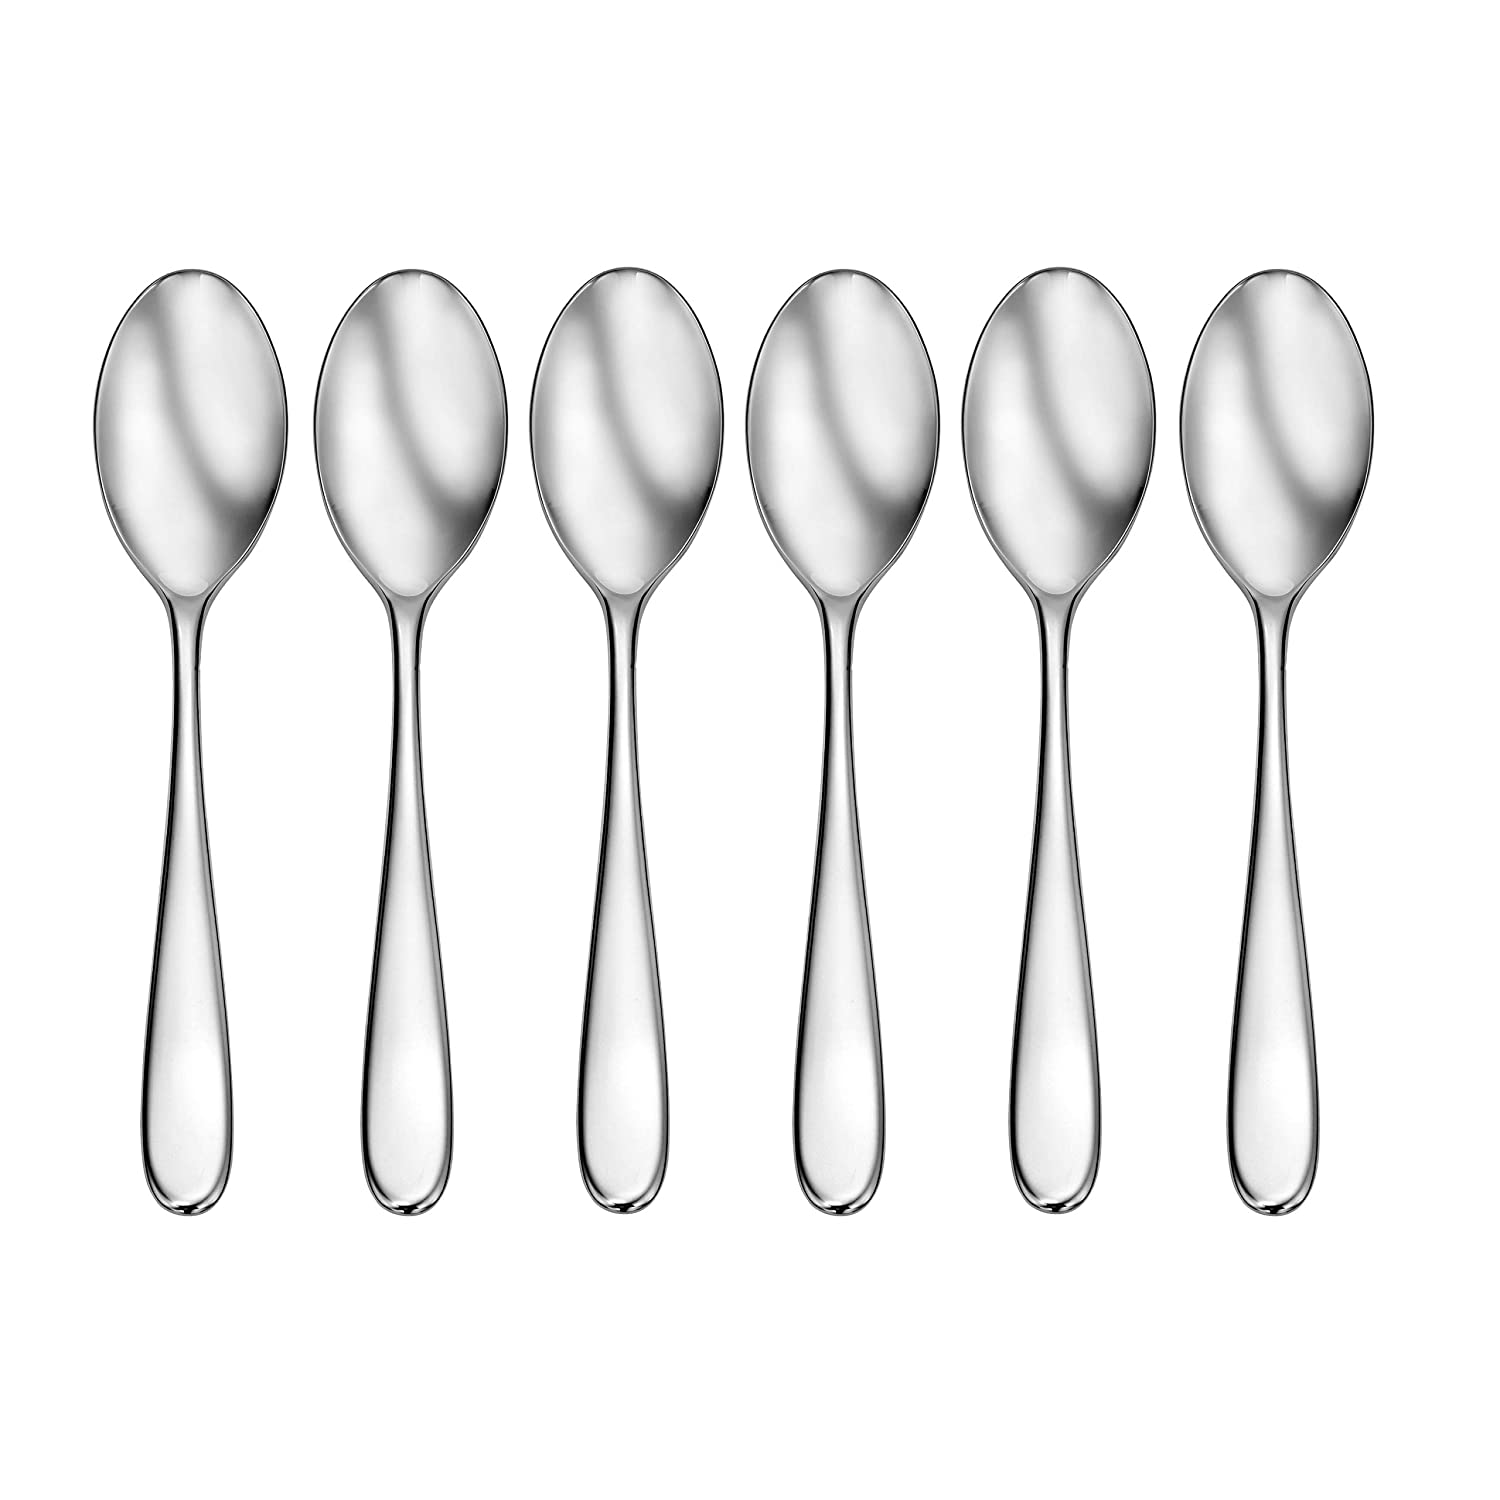 CraftKitchen Open Stock Stainless Steel Flatware Sets Classic, Dinner Forks Set of 6